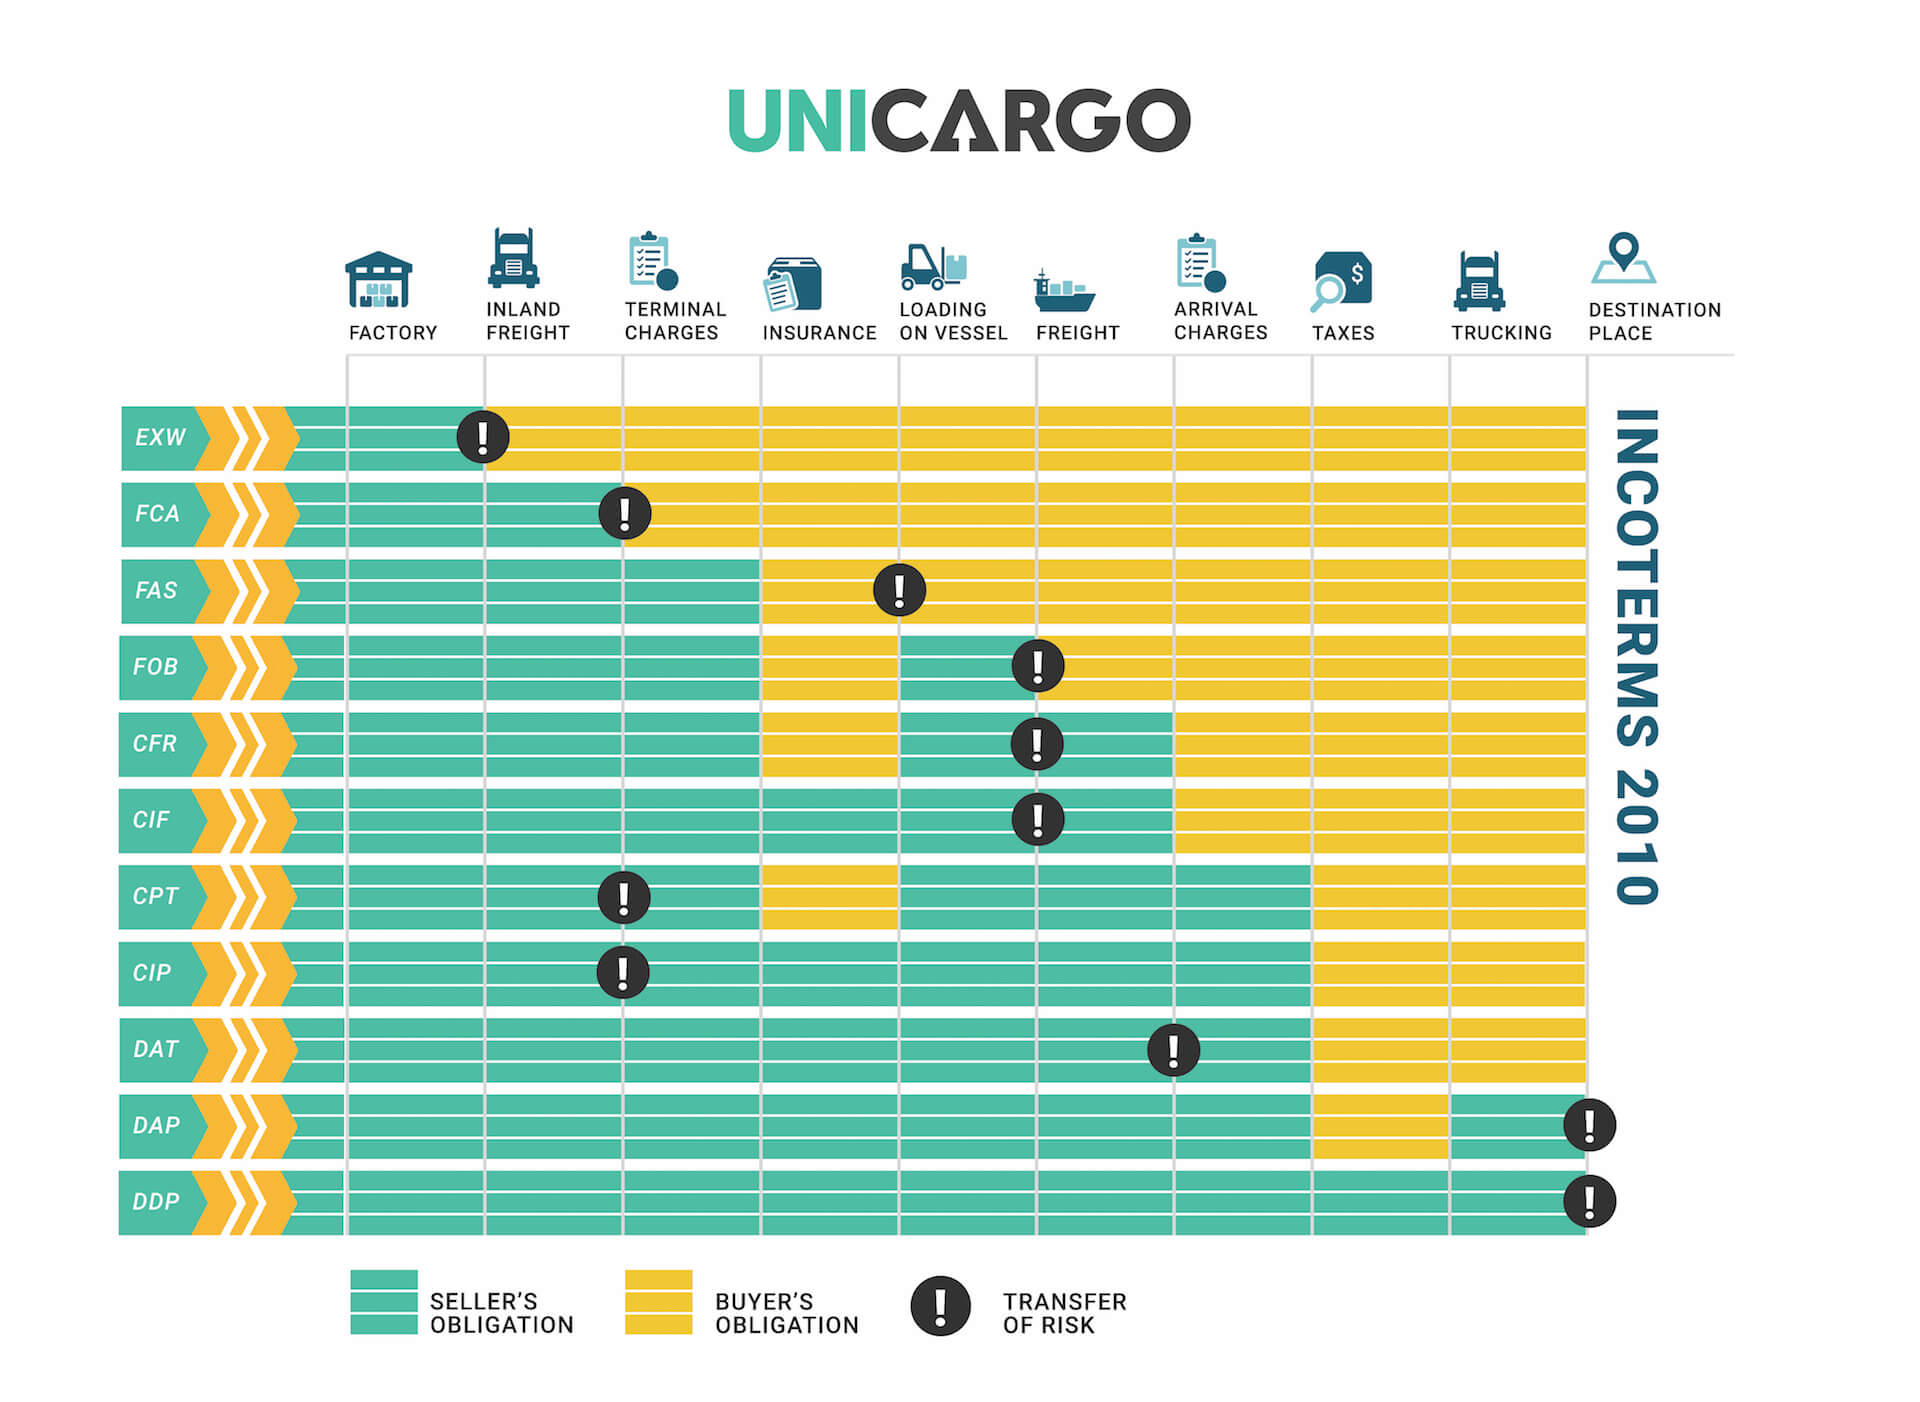 incoterms 2010 - inforgraphic of the 11 incoterms types